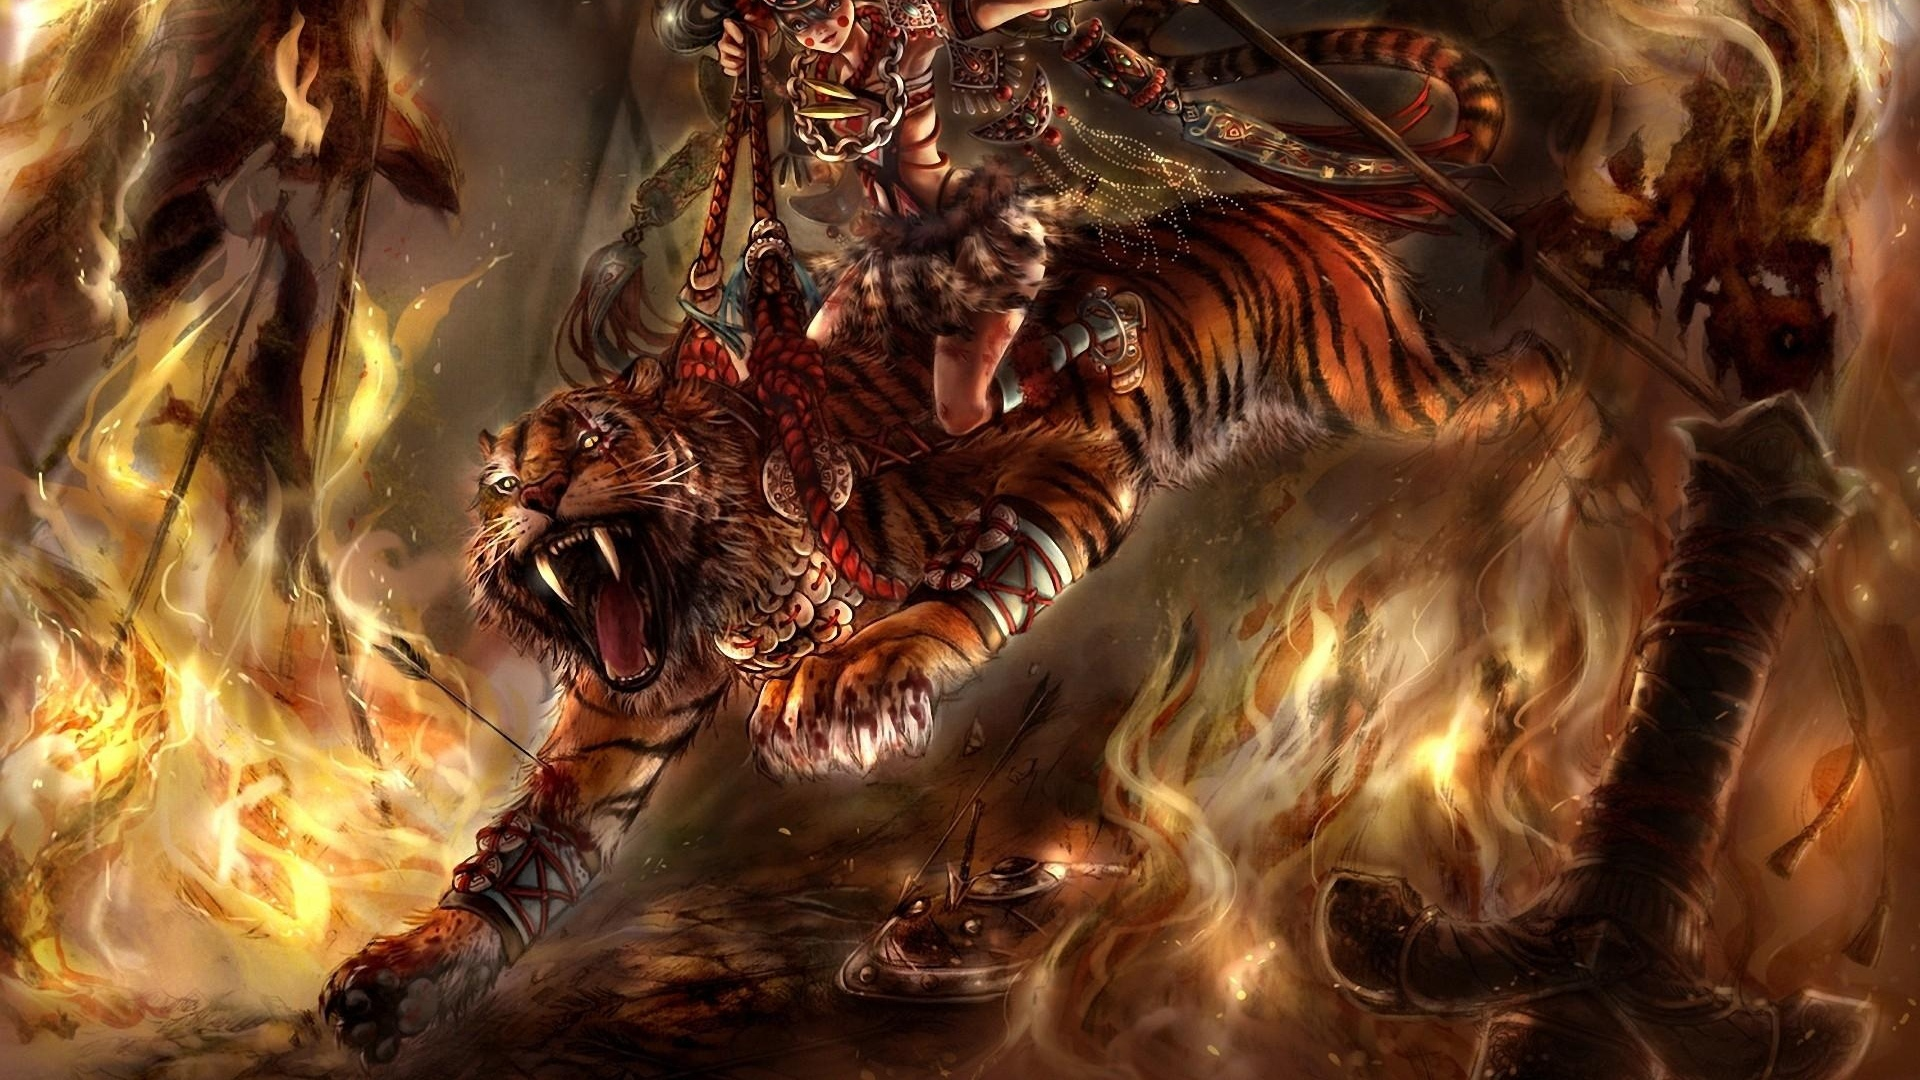 tiger-horsewoman-girl-fire-jump-1920x1080